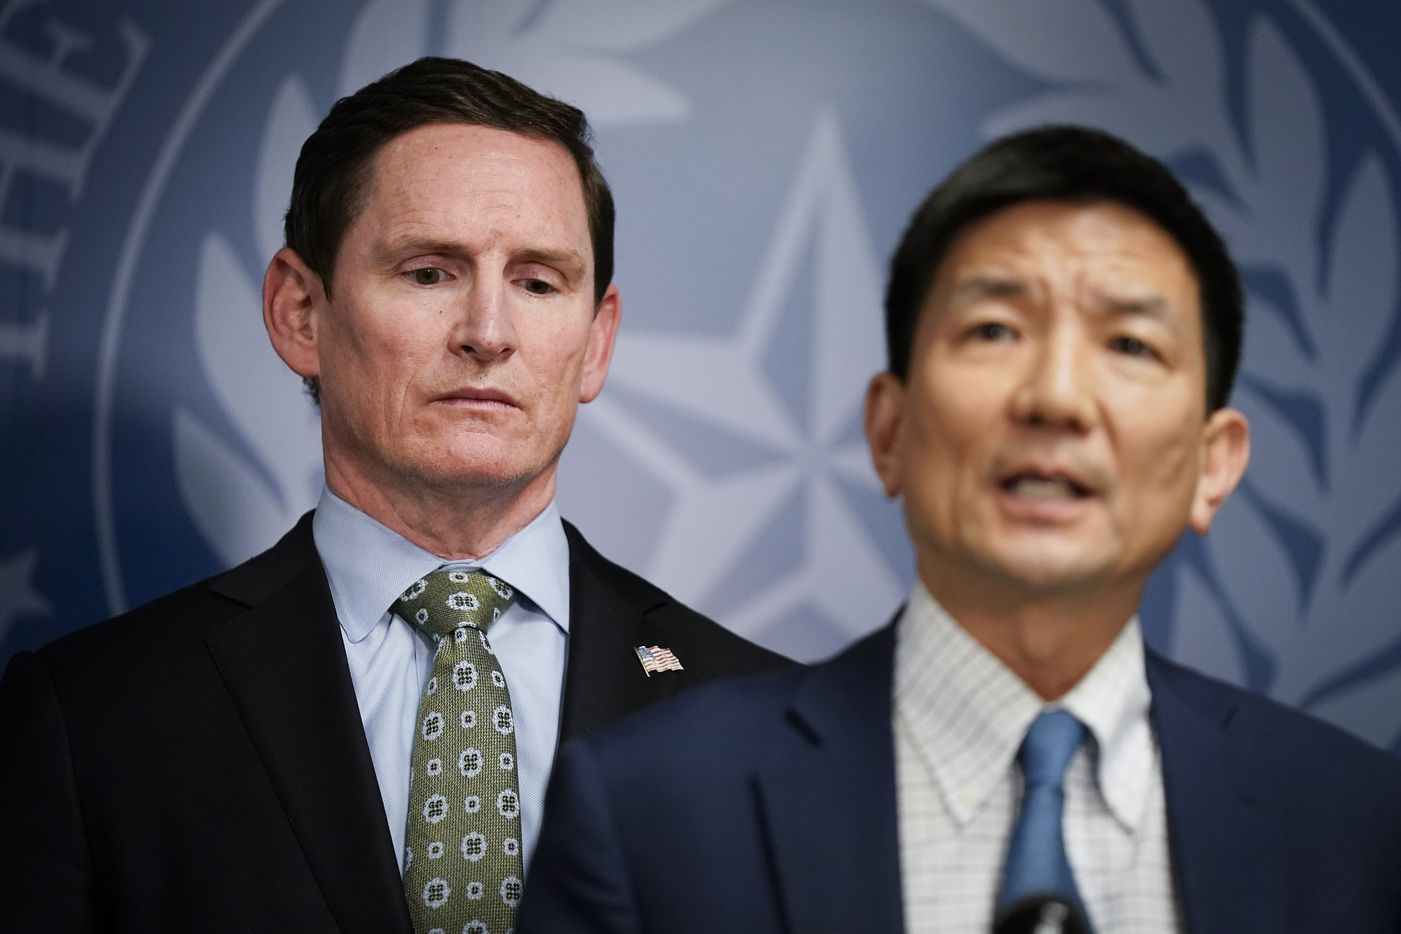 Dallas County Judge Clay Jenkins (left) listens as Dr. Philip Huang, Director of Dallas County Health and Human Services, addresses the local state of disaster for public health emergency that has been declared in the county, due to more cases of the new coronavirus, late Thursday, March 12. 2020, in Dallas.